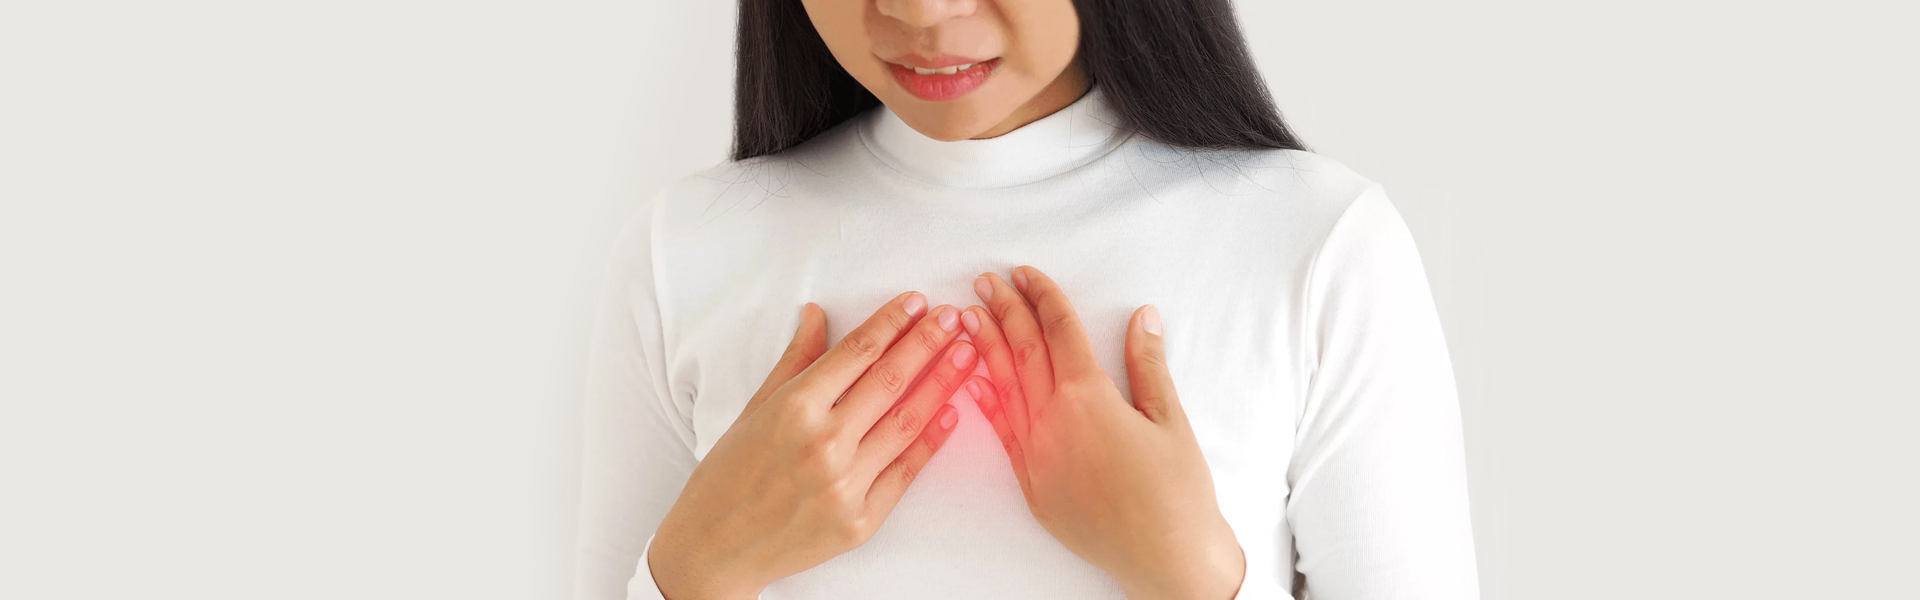 Pericarditis:Symptoms, Causes and Available Treatment